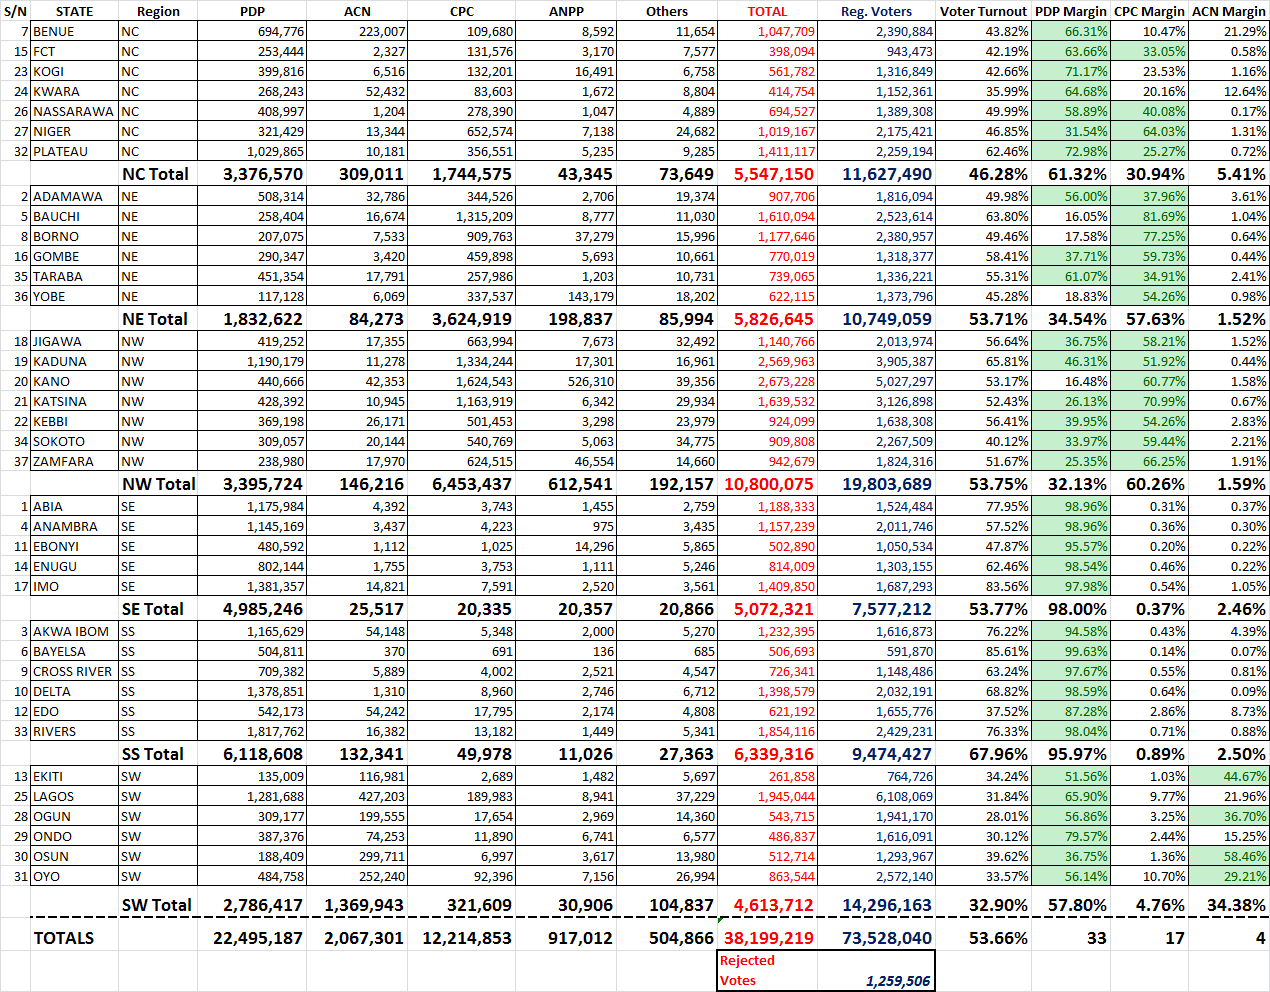 Nigerian Presidential Elections 2011 Analysis